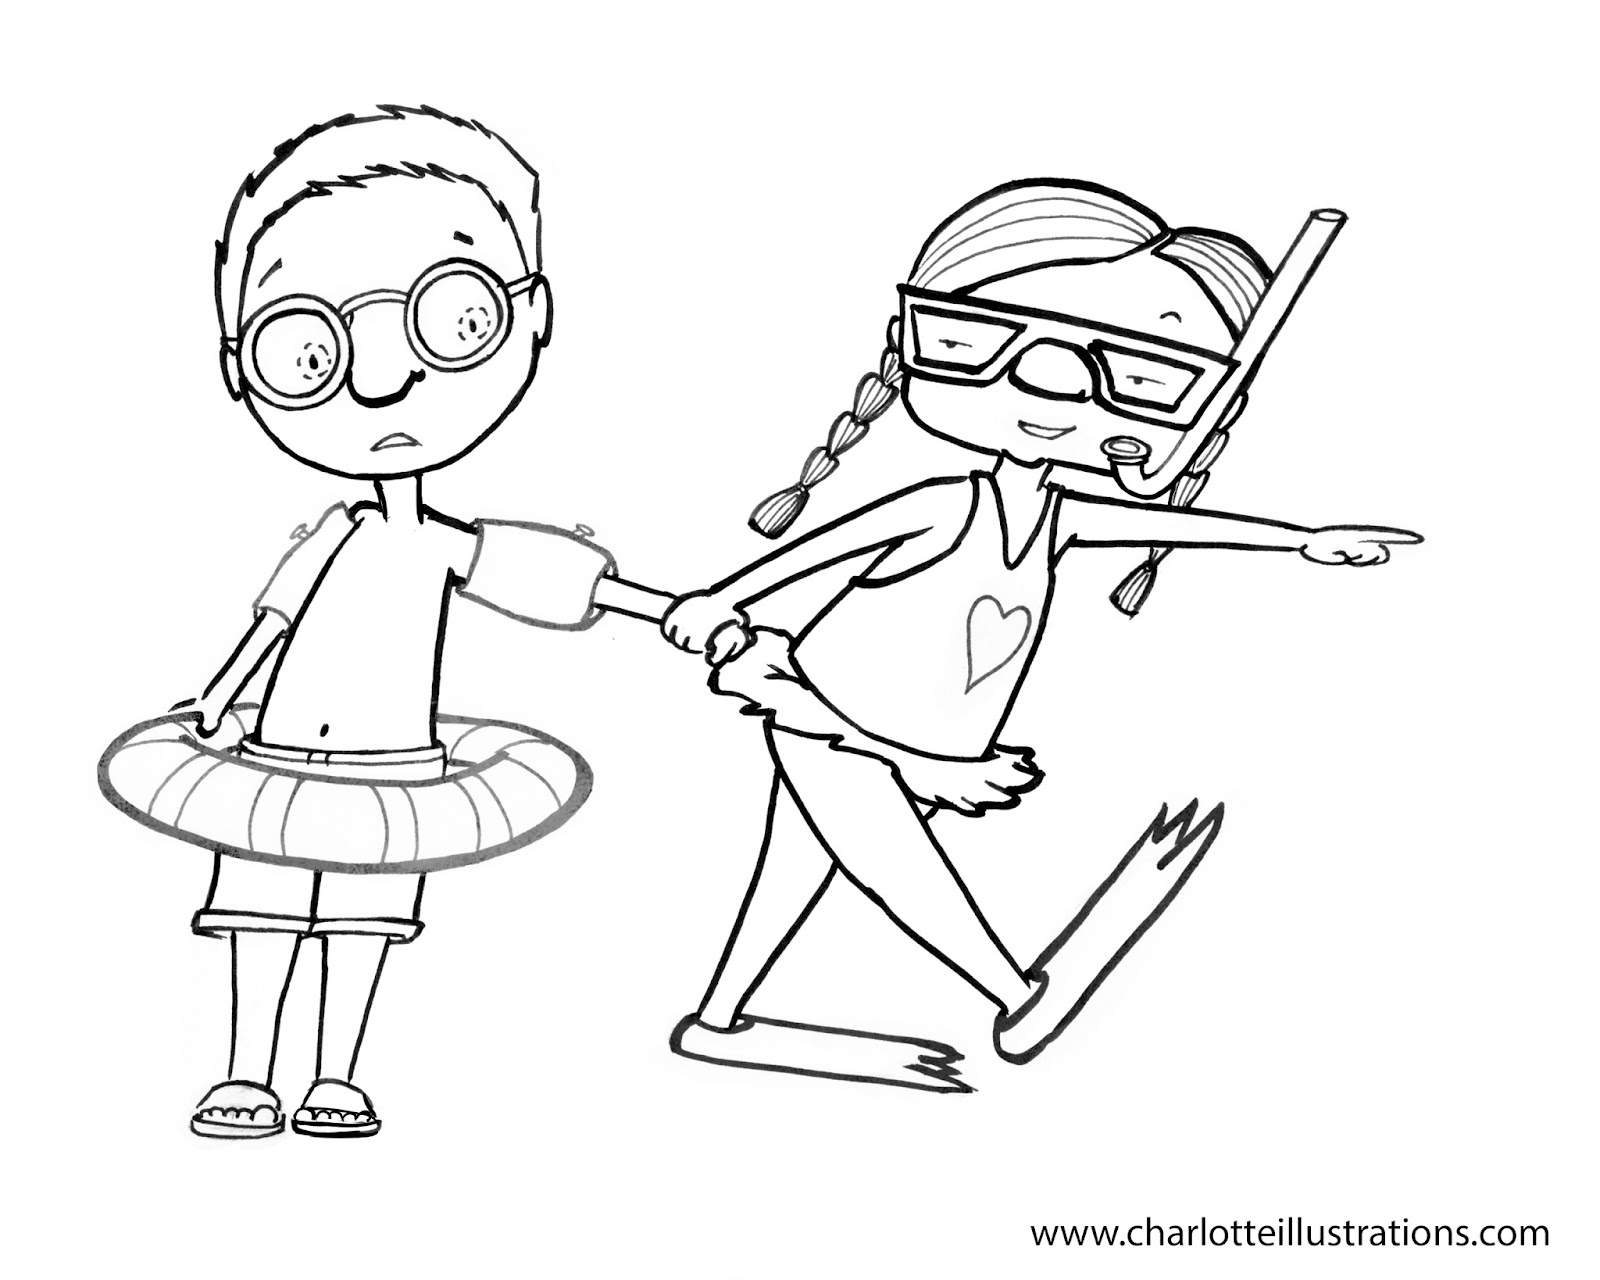 coloring pages swimming in a lake | Charlotte Illustrations: March 2013